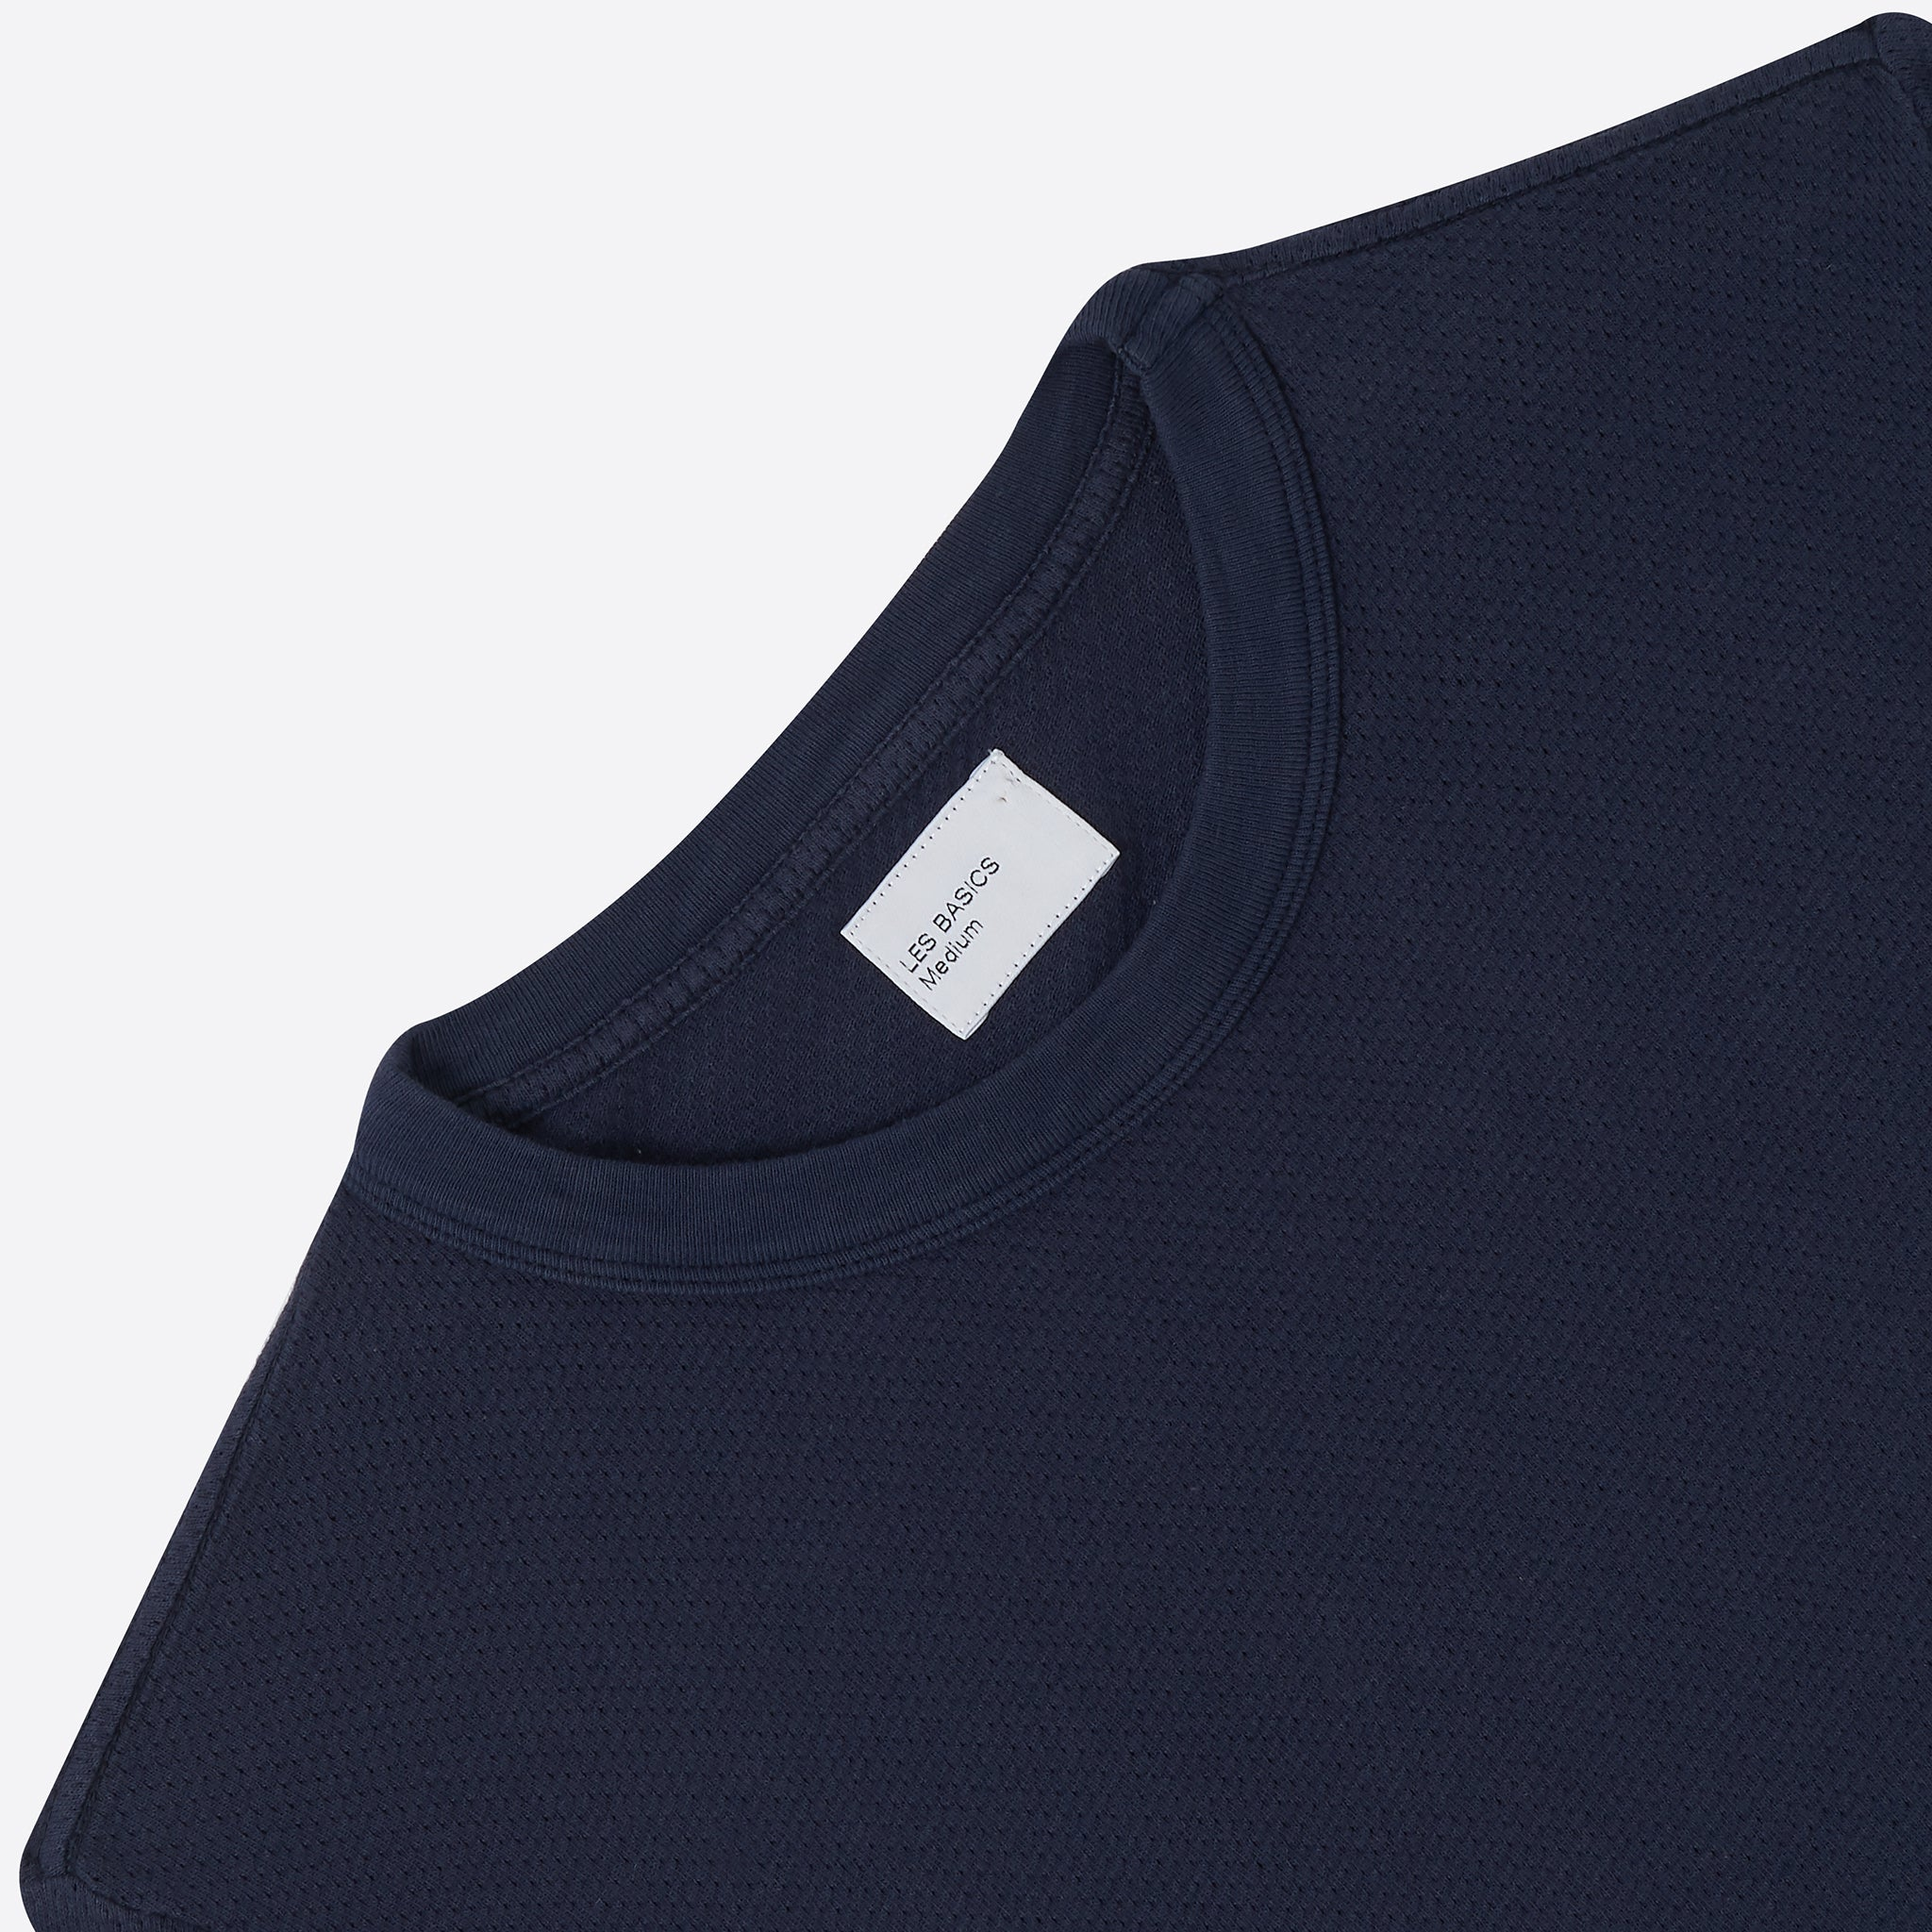 Les Basics Le Crew Tee in Navy